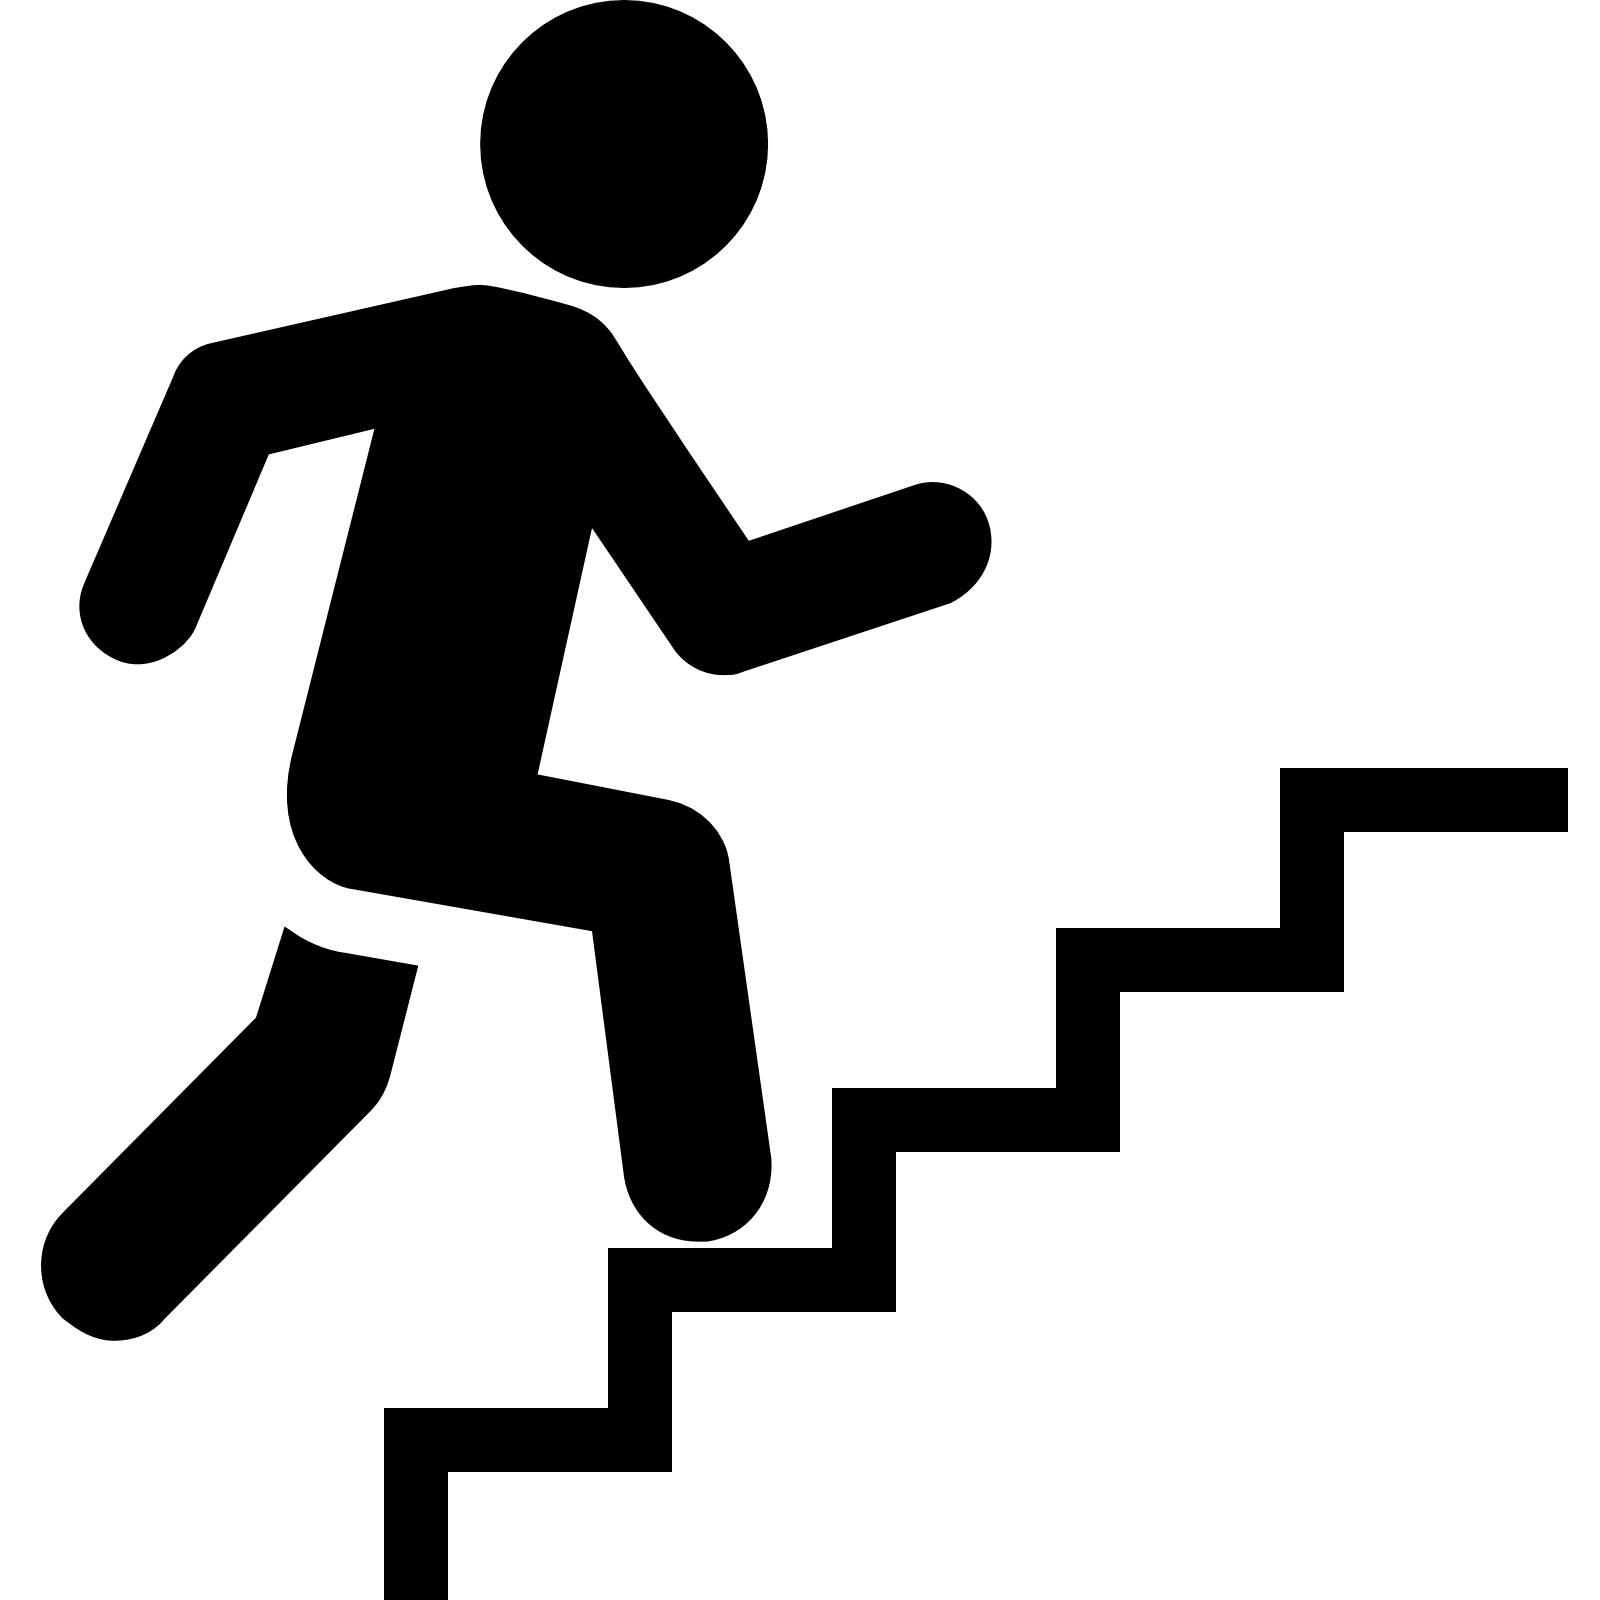 English clipart stair. Free download best on